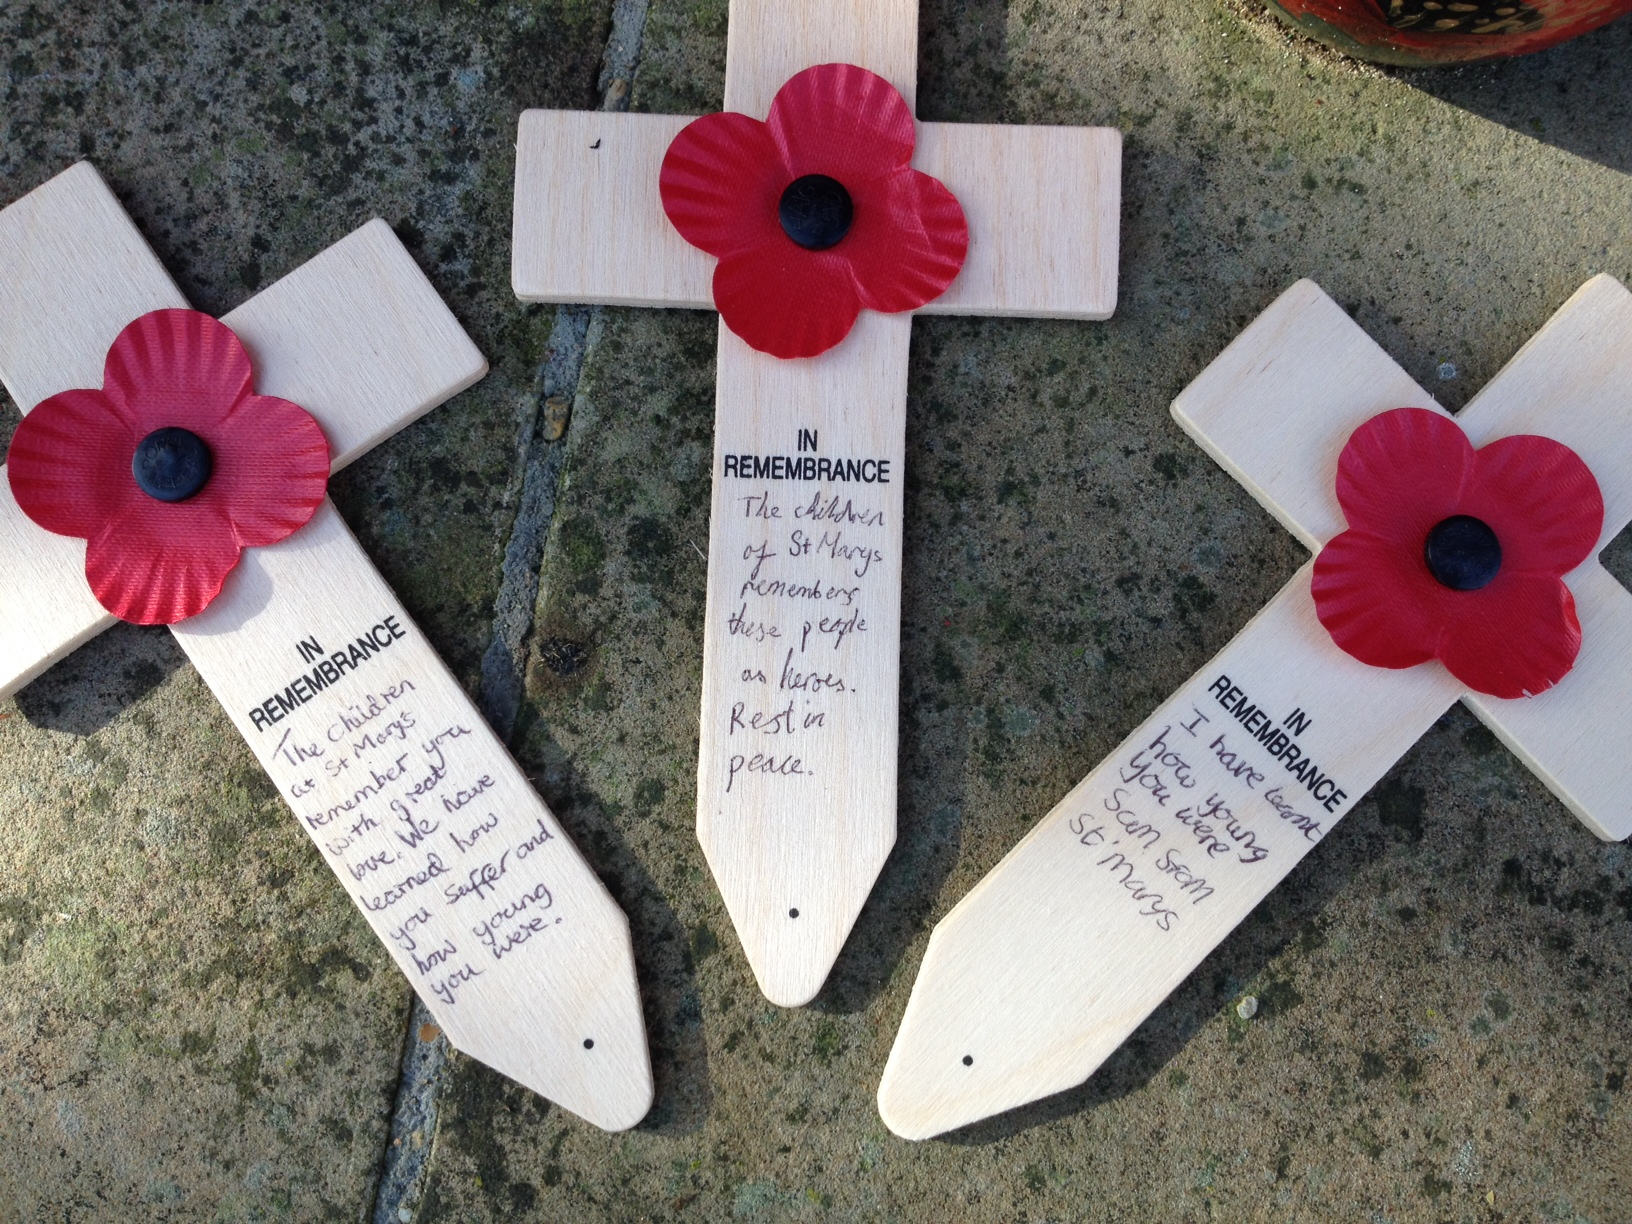 Poppy crosses left by the children from St Mary's